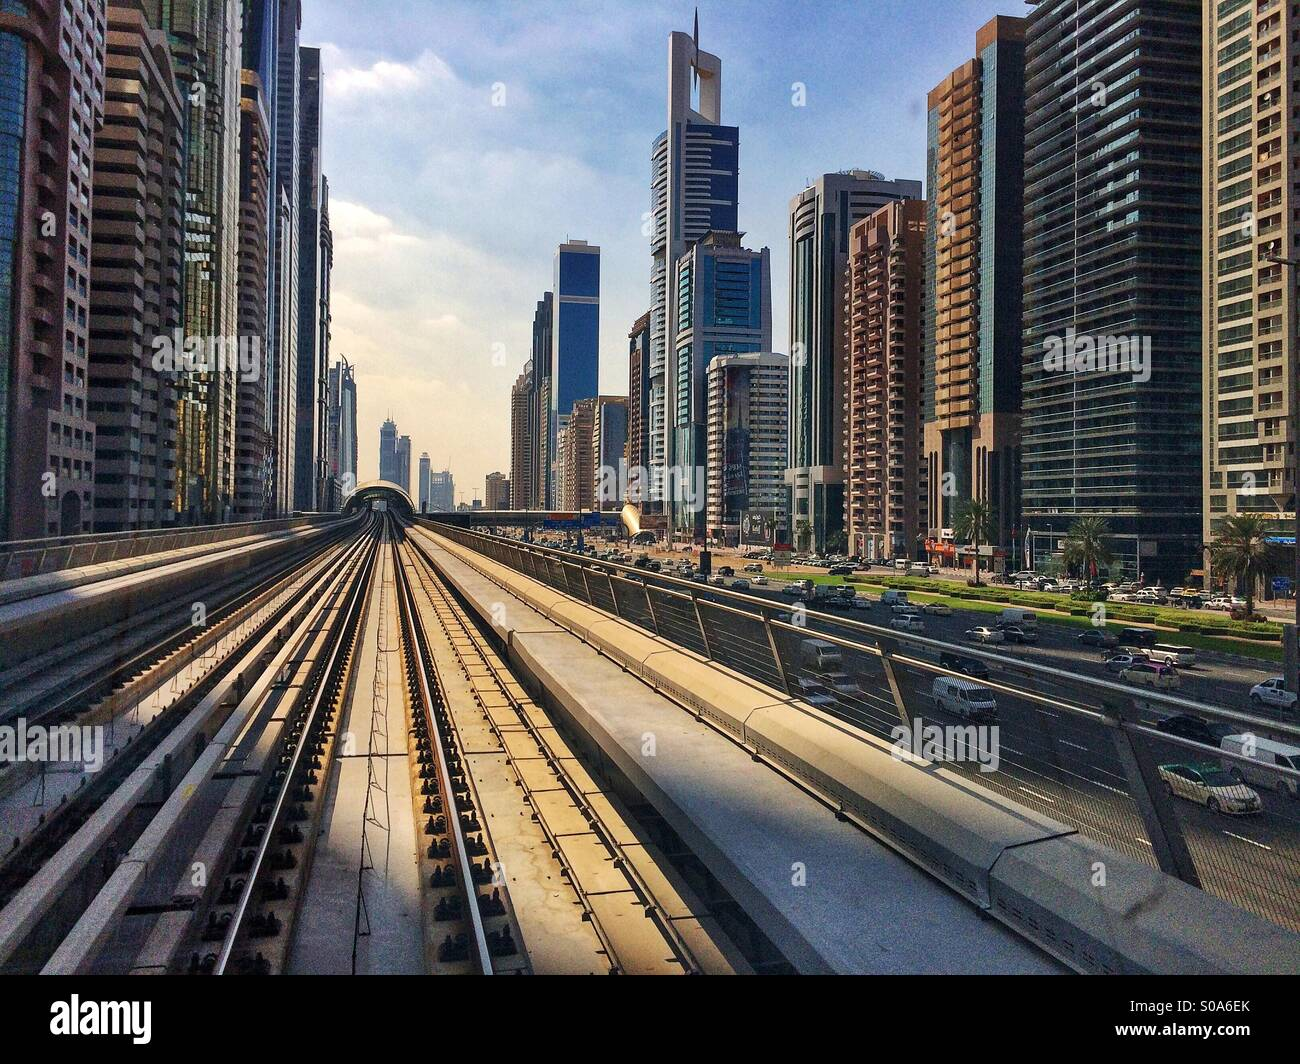 Dubai buildings - Stock Image